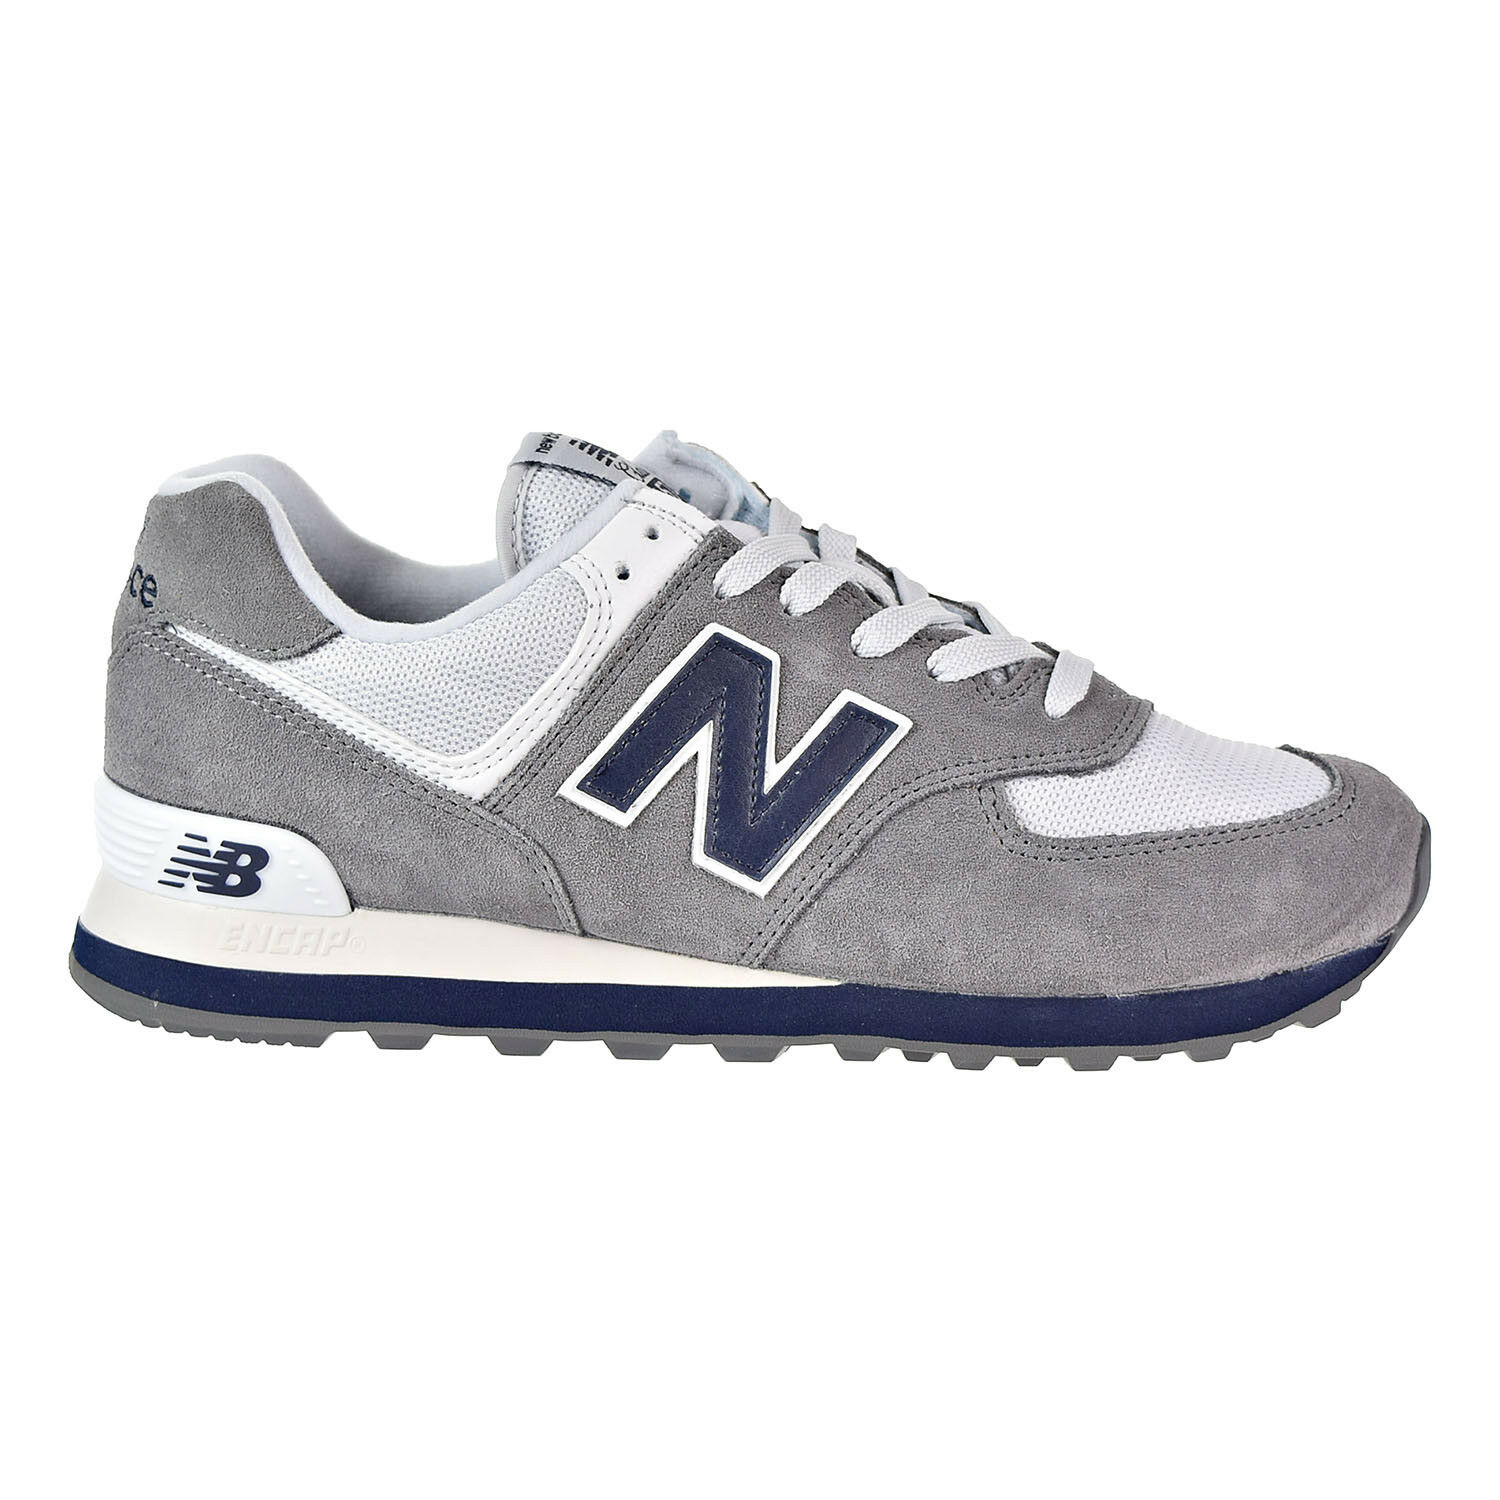 New Balance 574 Core Plus Men's shoes Grey bluee White ML574ESD